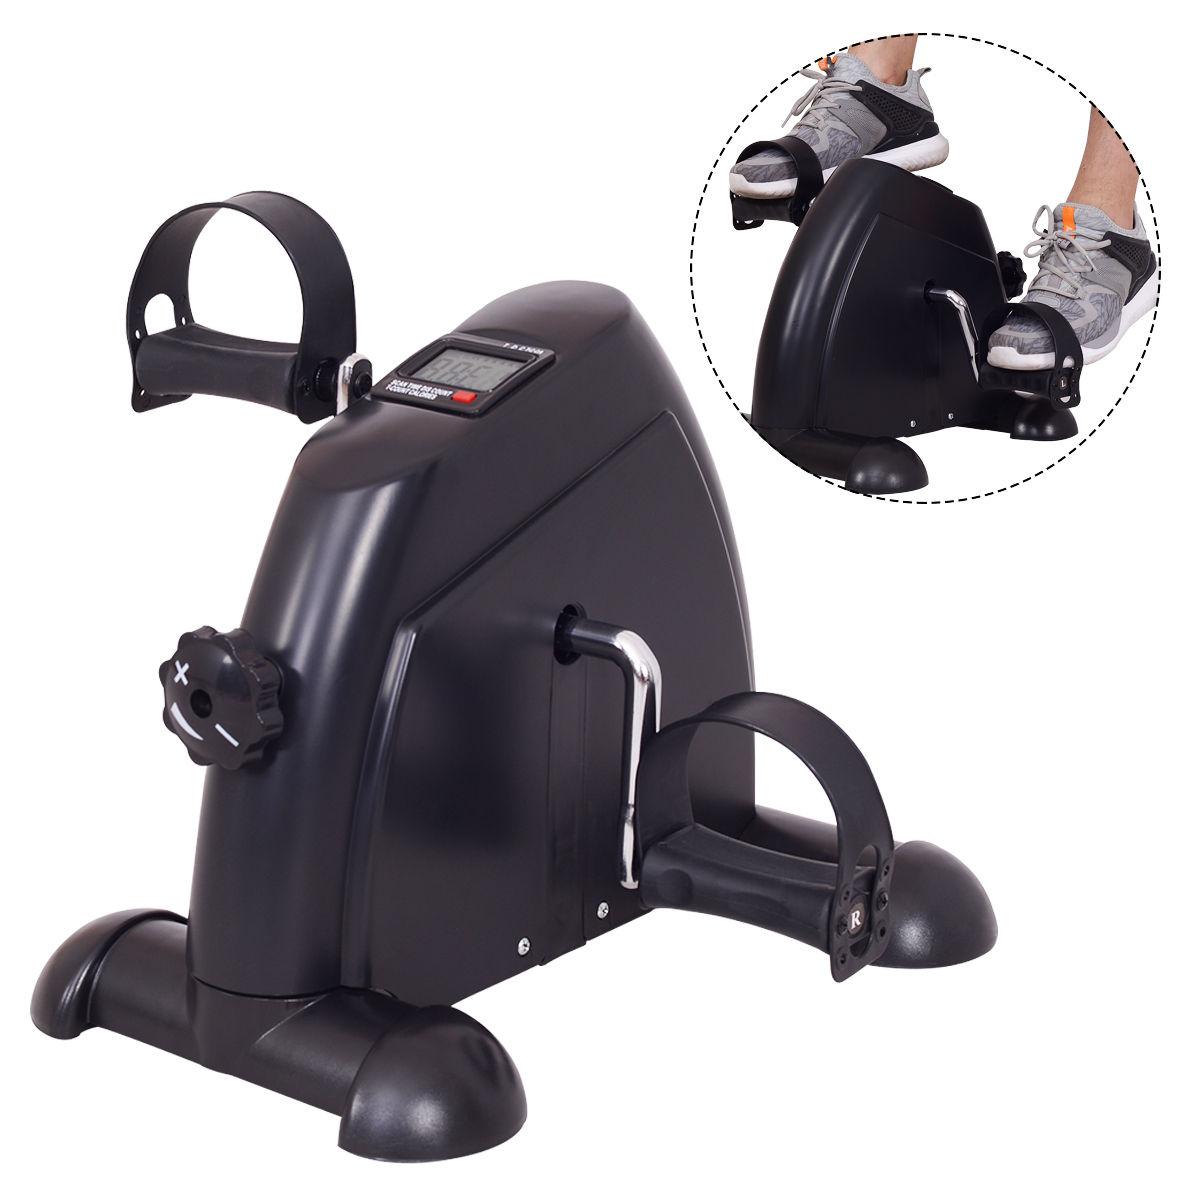 GHP Black Adjustable Resistance Stationary Mini Exercise Pedal Bike with LCD Display